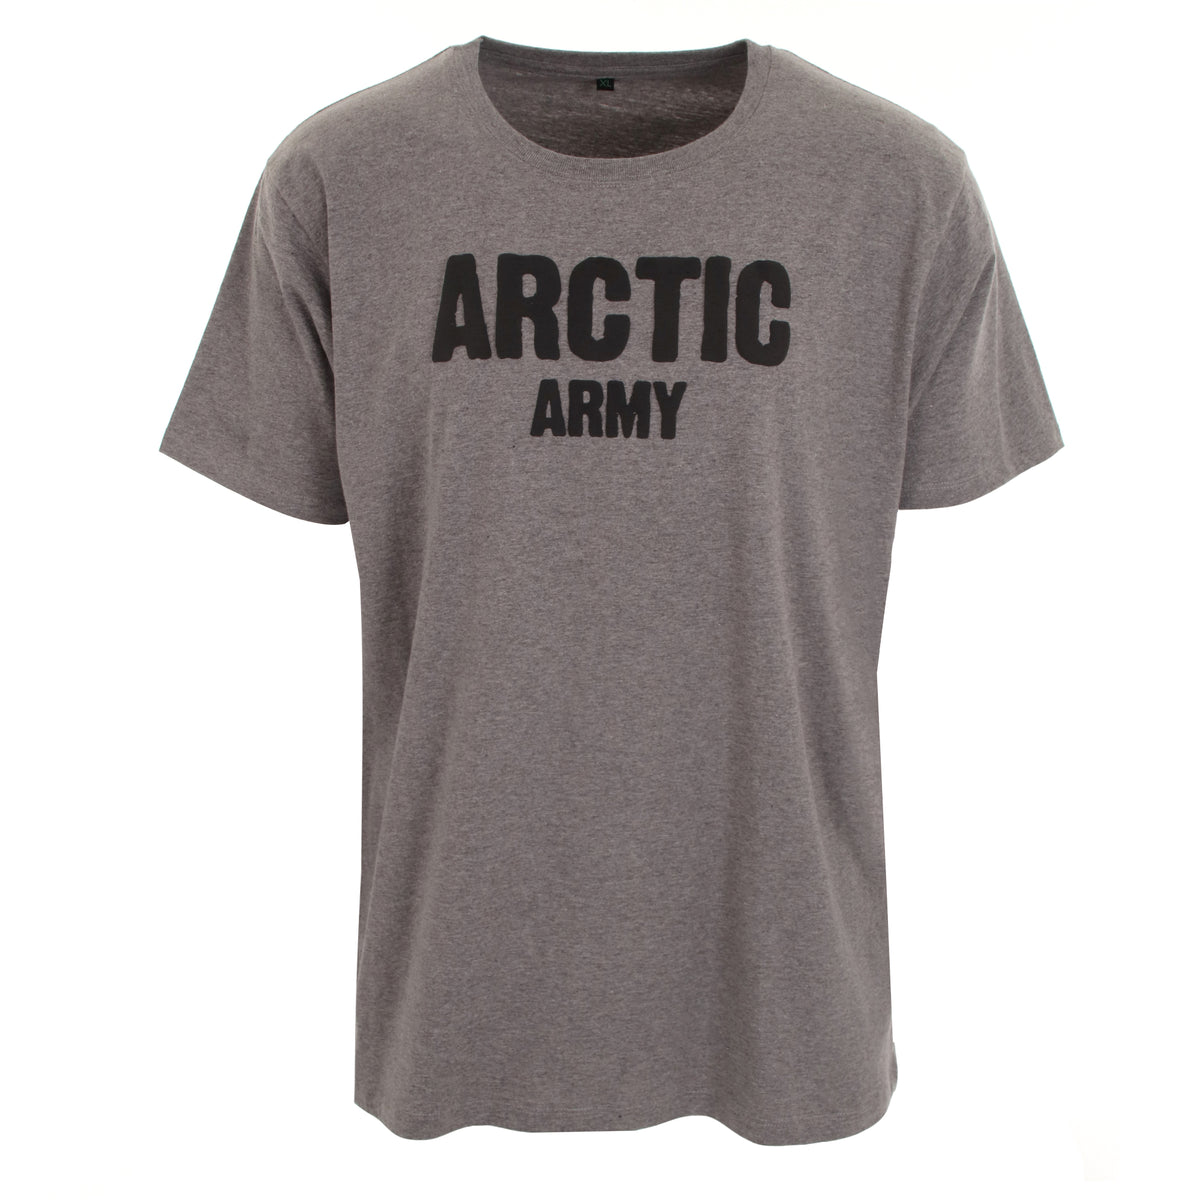 ARCTIC T SHIRT - GREY/BLACK MEN'S